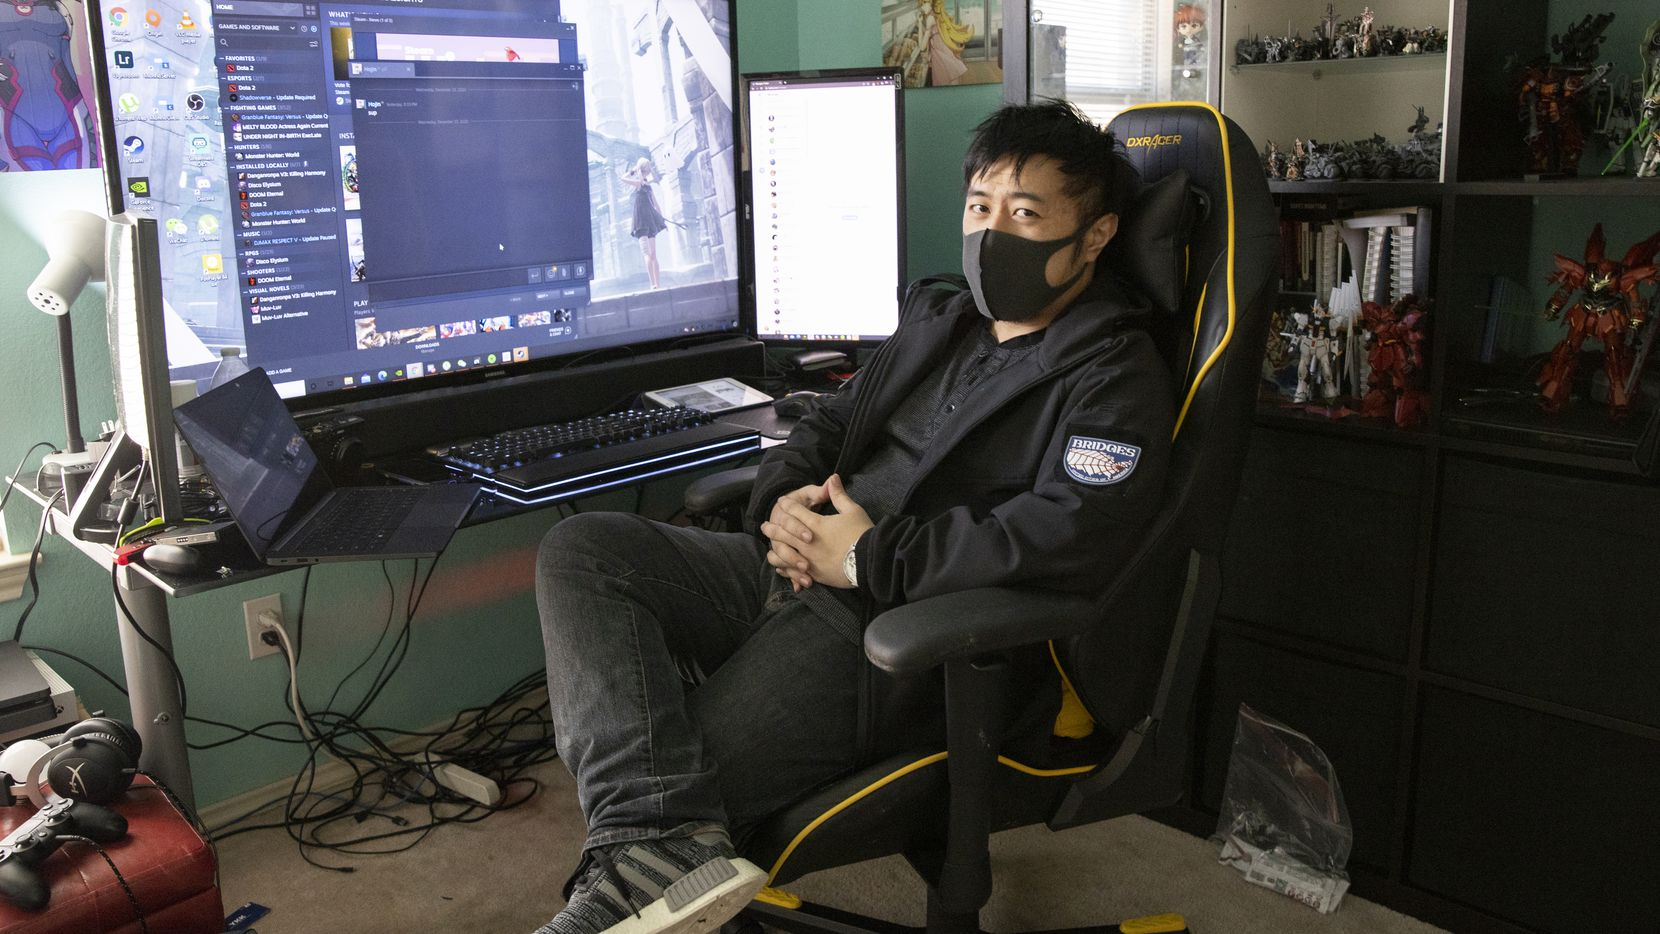 Warren Lee poses in his home office in Euless after returning from Wuhan on Thursday, Dec. 24, 2020. After nearly 11 months overseas, Lee returned home this week.